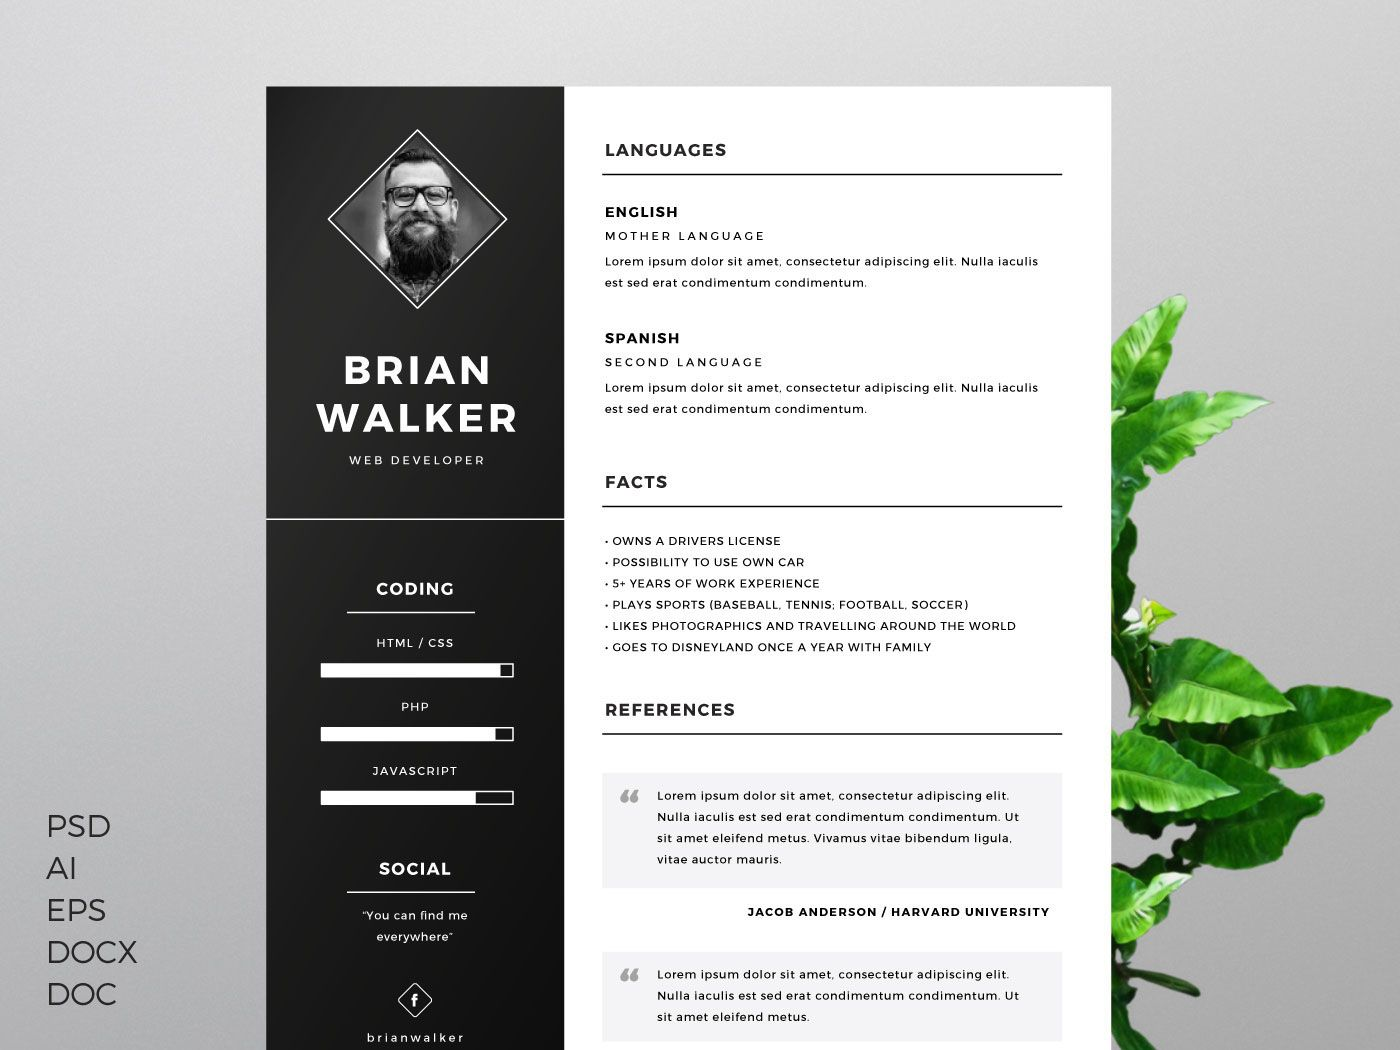 18 modles de cv cratifs gratuits resume templates for wordcv resume templatefree - Free Modern Resume Templates For Word